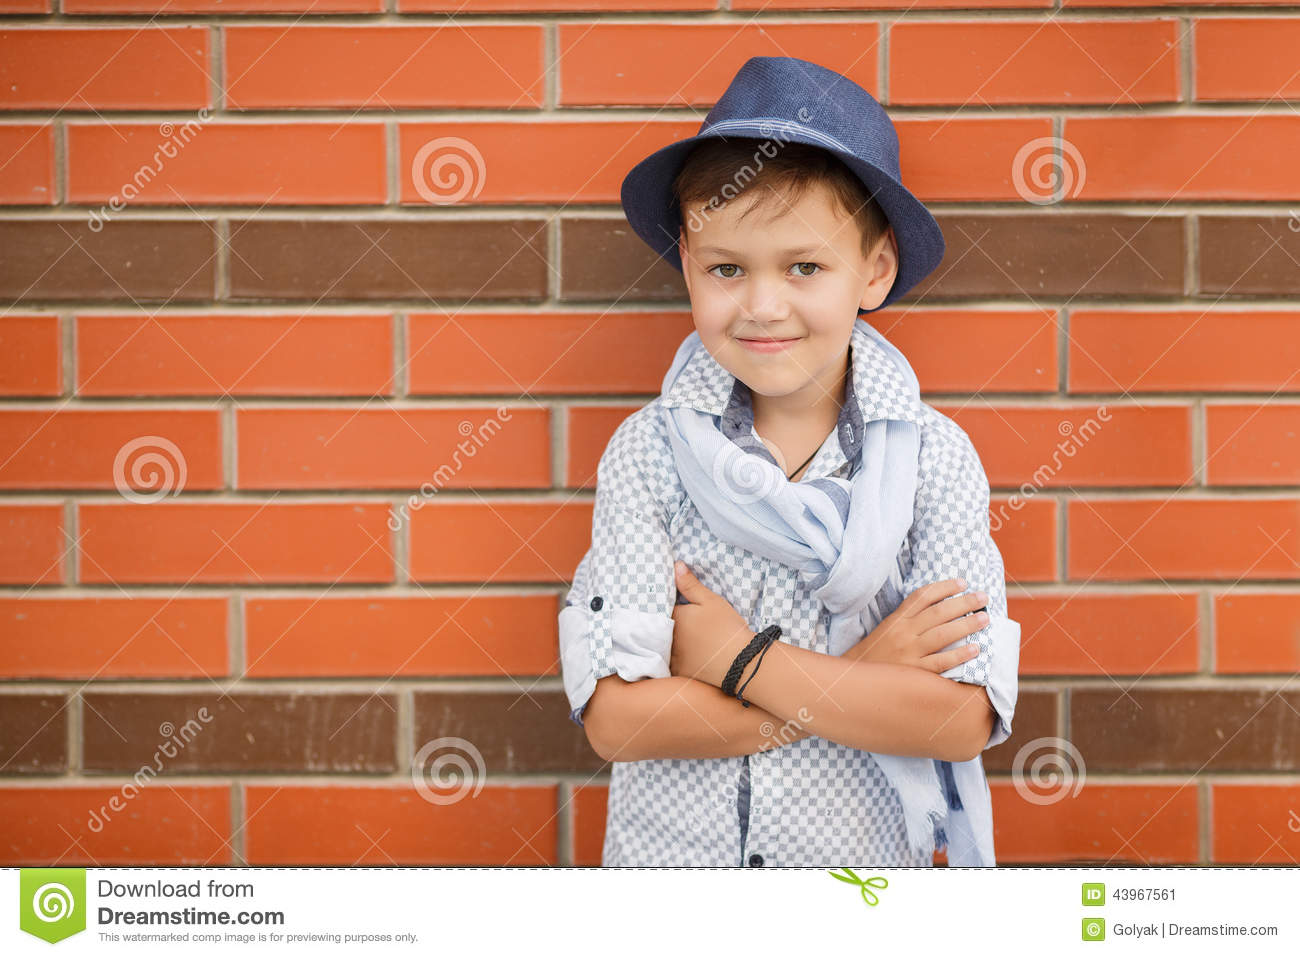 Stylish Boy In Hat Posing On A Brick Wall Stock Image Image Of